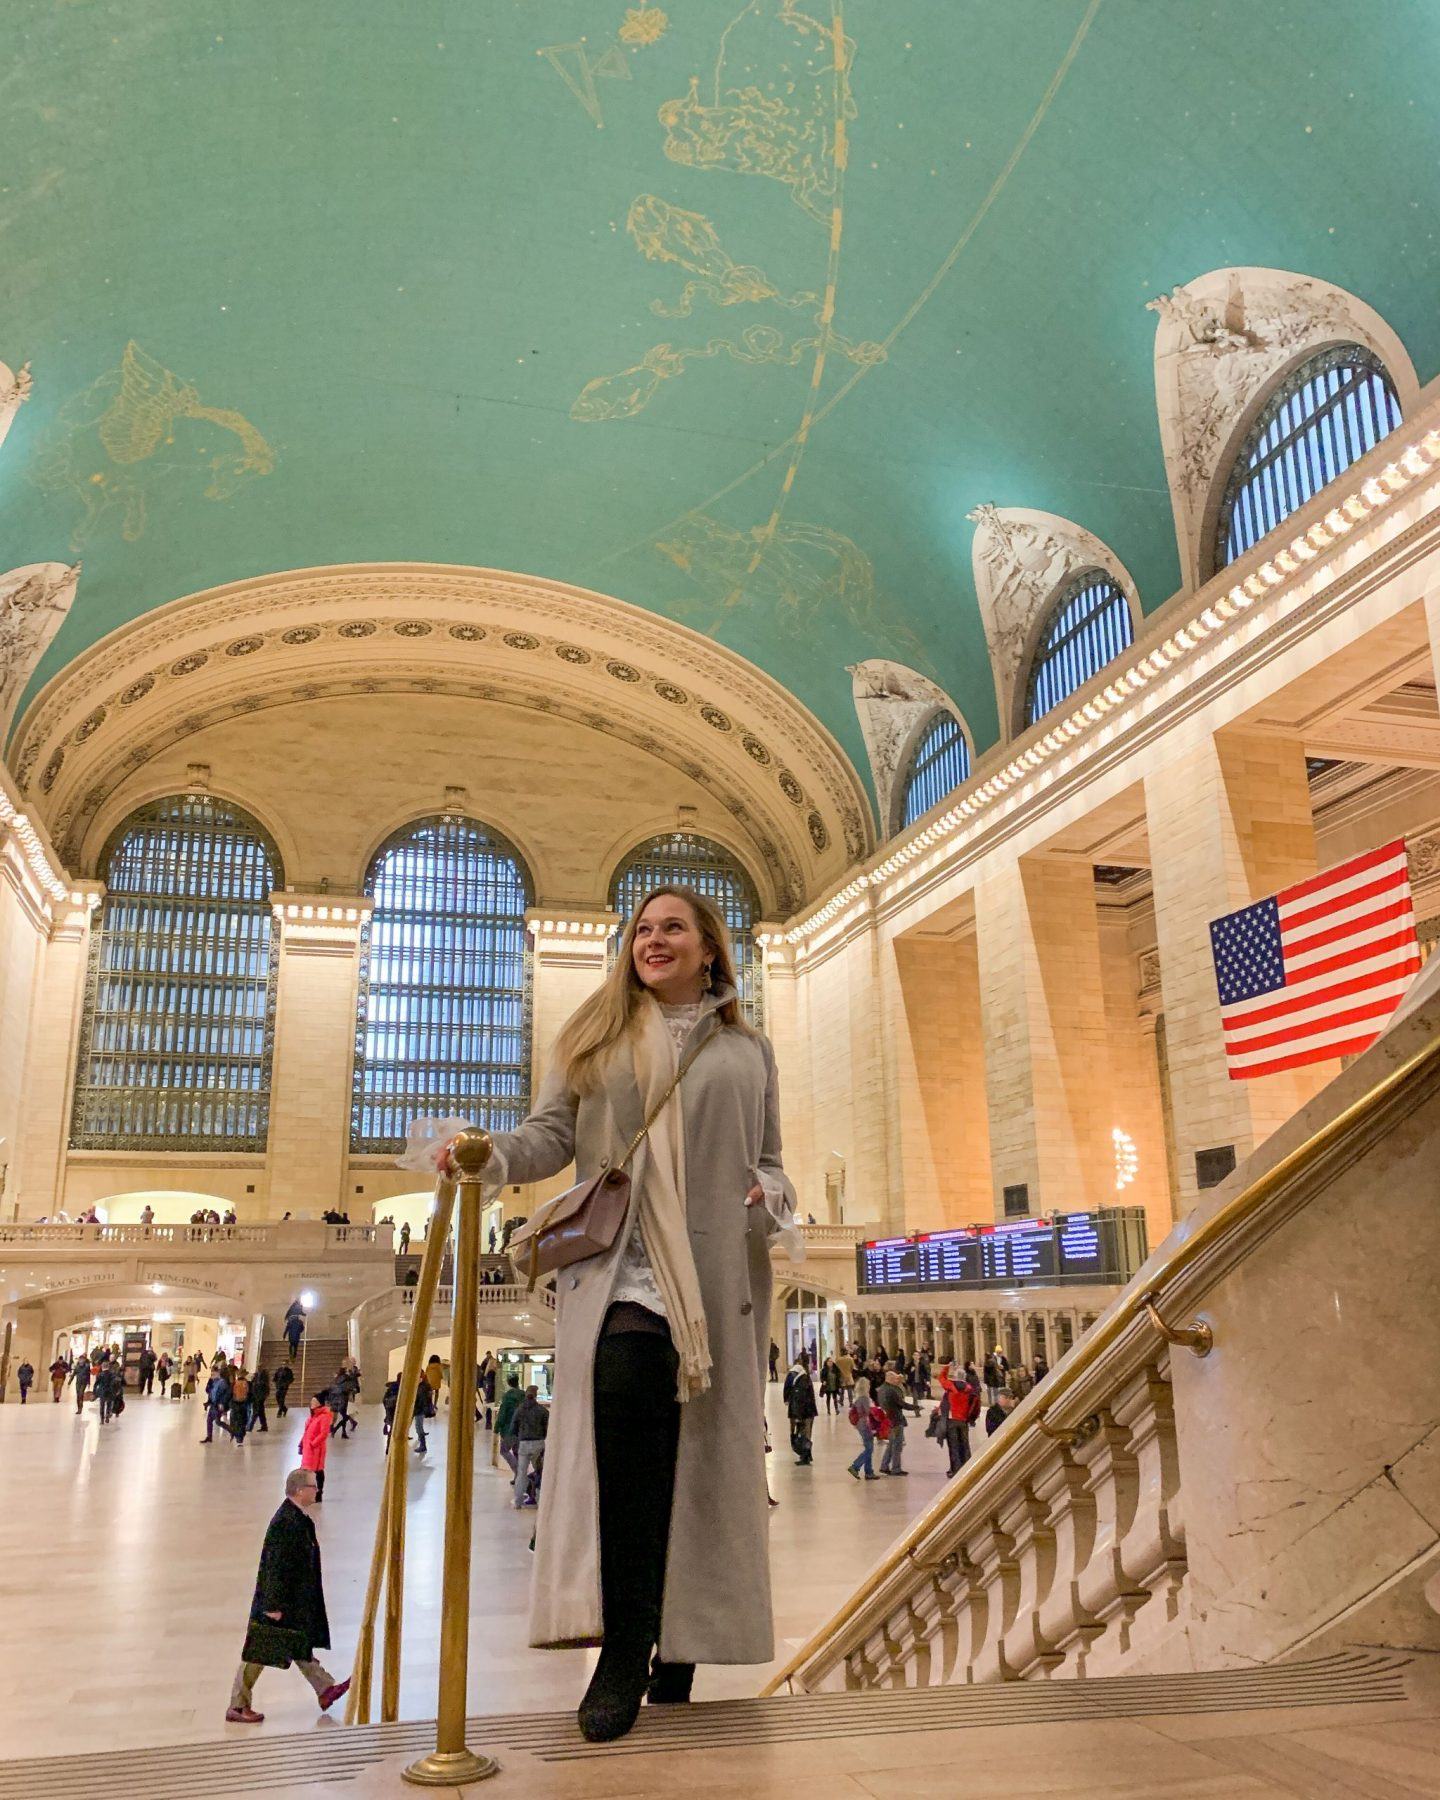 Grand Central Station, New York City, Katie Heath, KALANCHOE